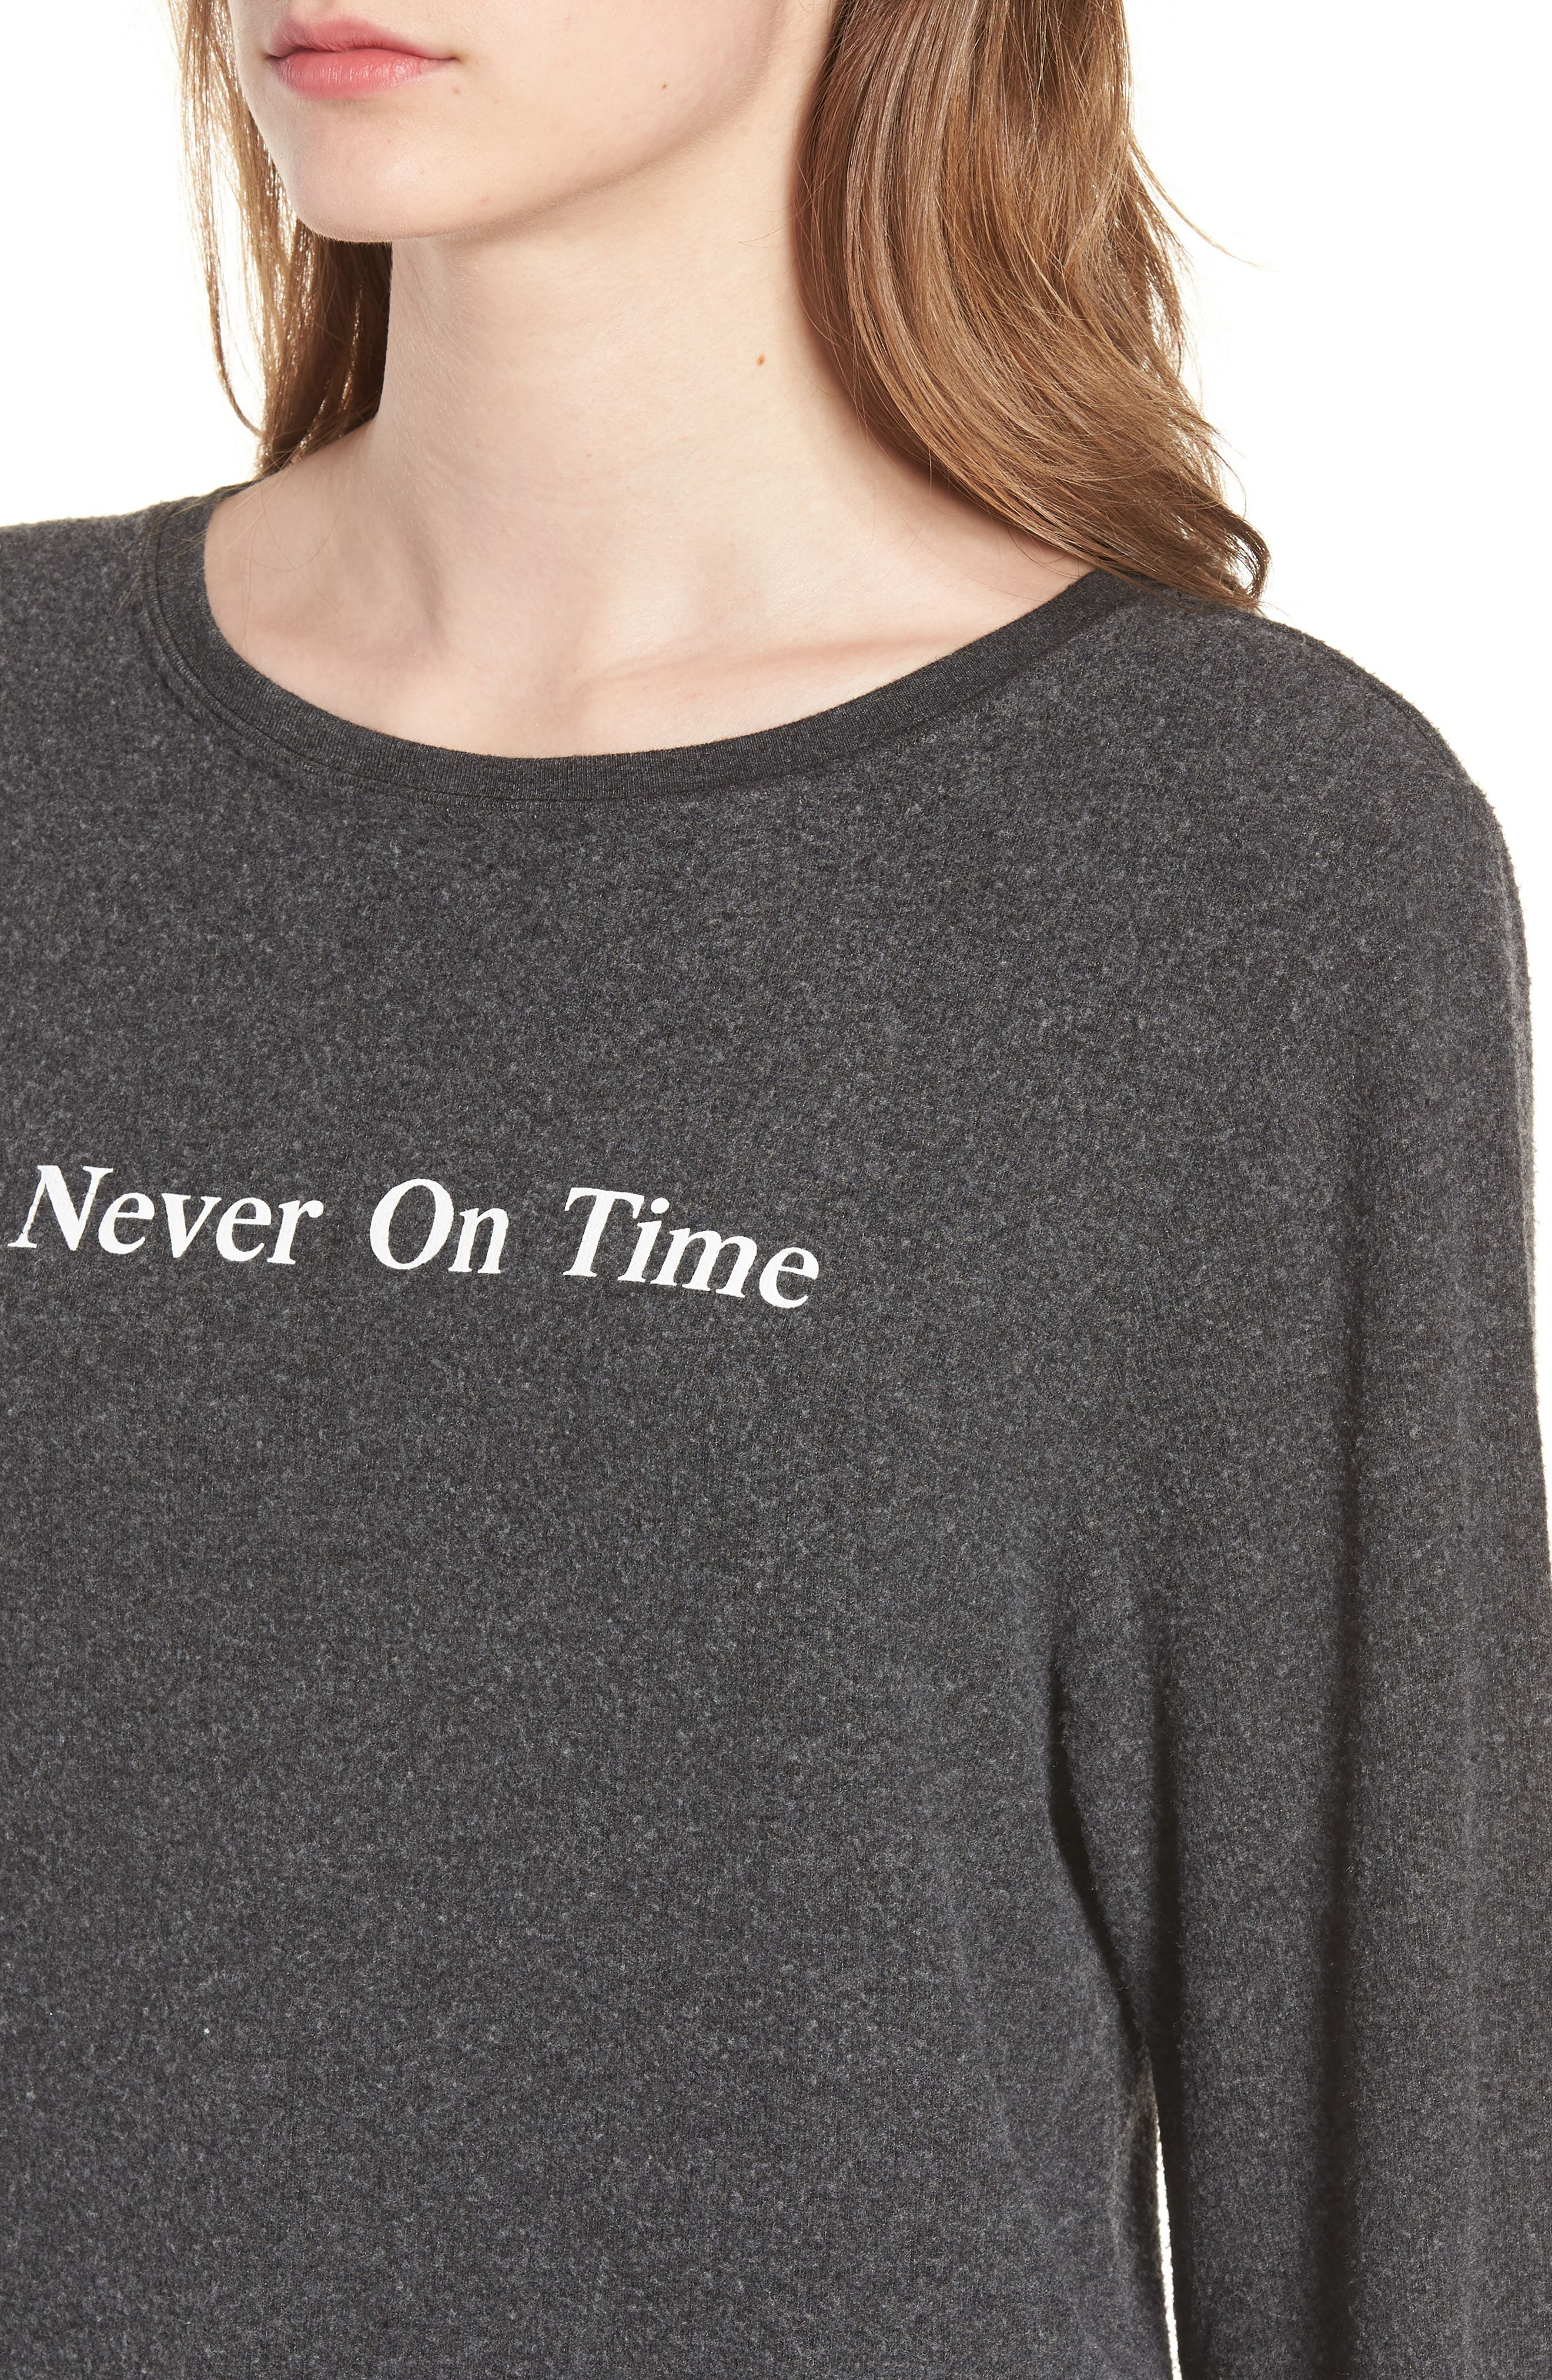 Never on Time Baggy Beach Jumper Pullover,                             Alternate thumbnail 4, color,                             001